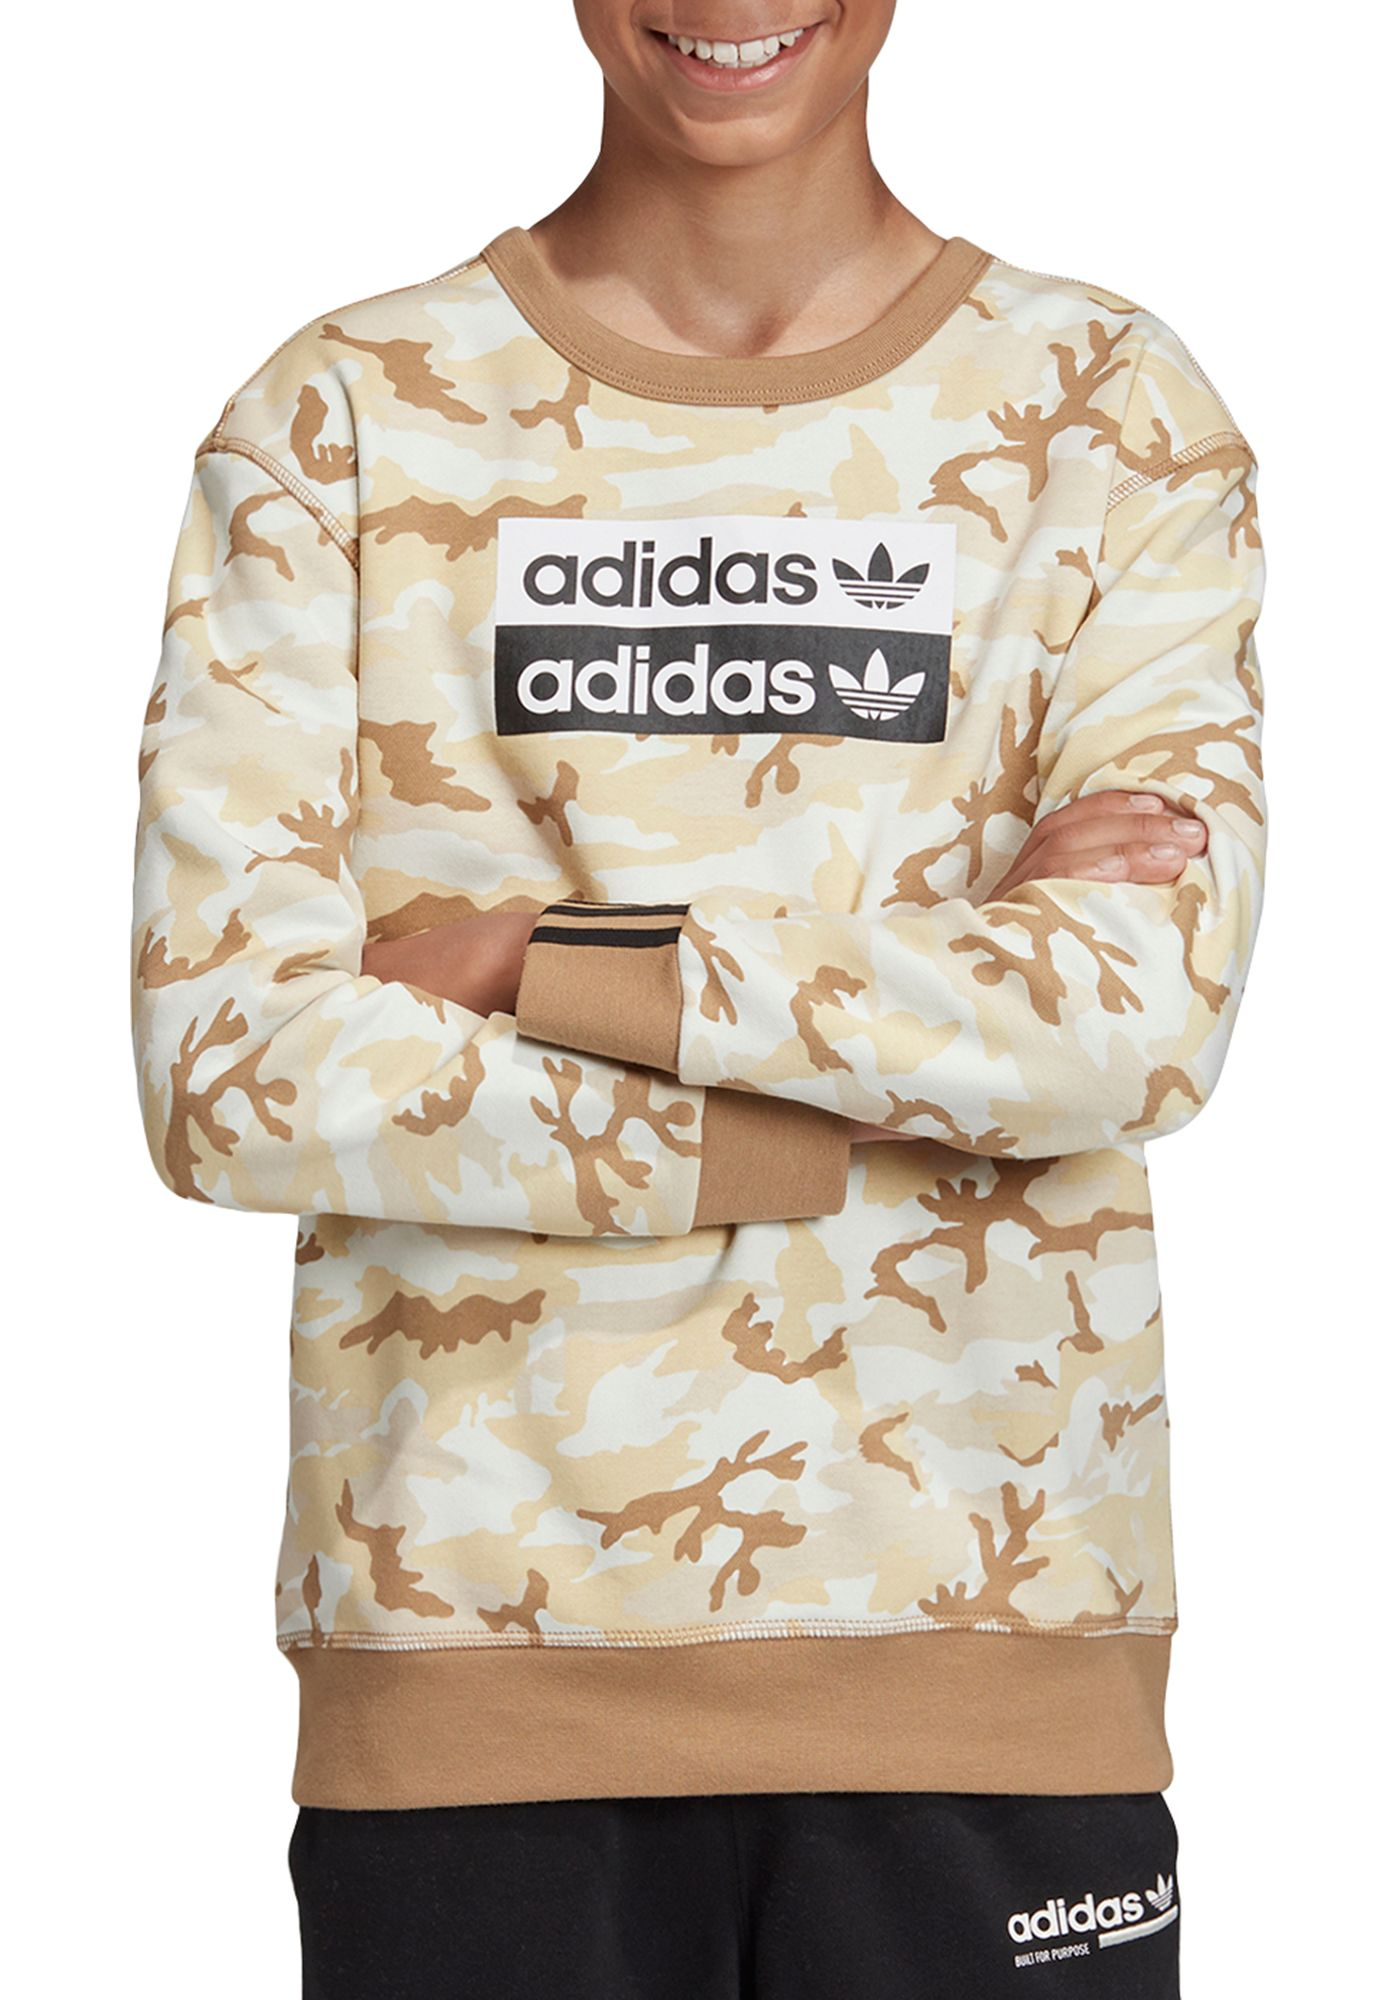 adidas Originals Boy's Vocal Camo Crewneck Sweatshirt